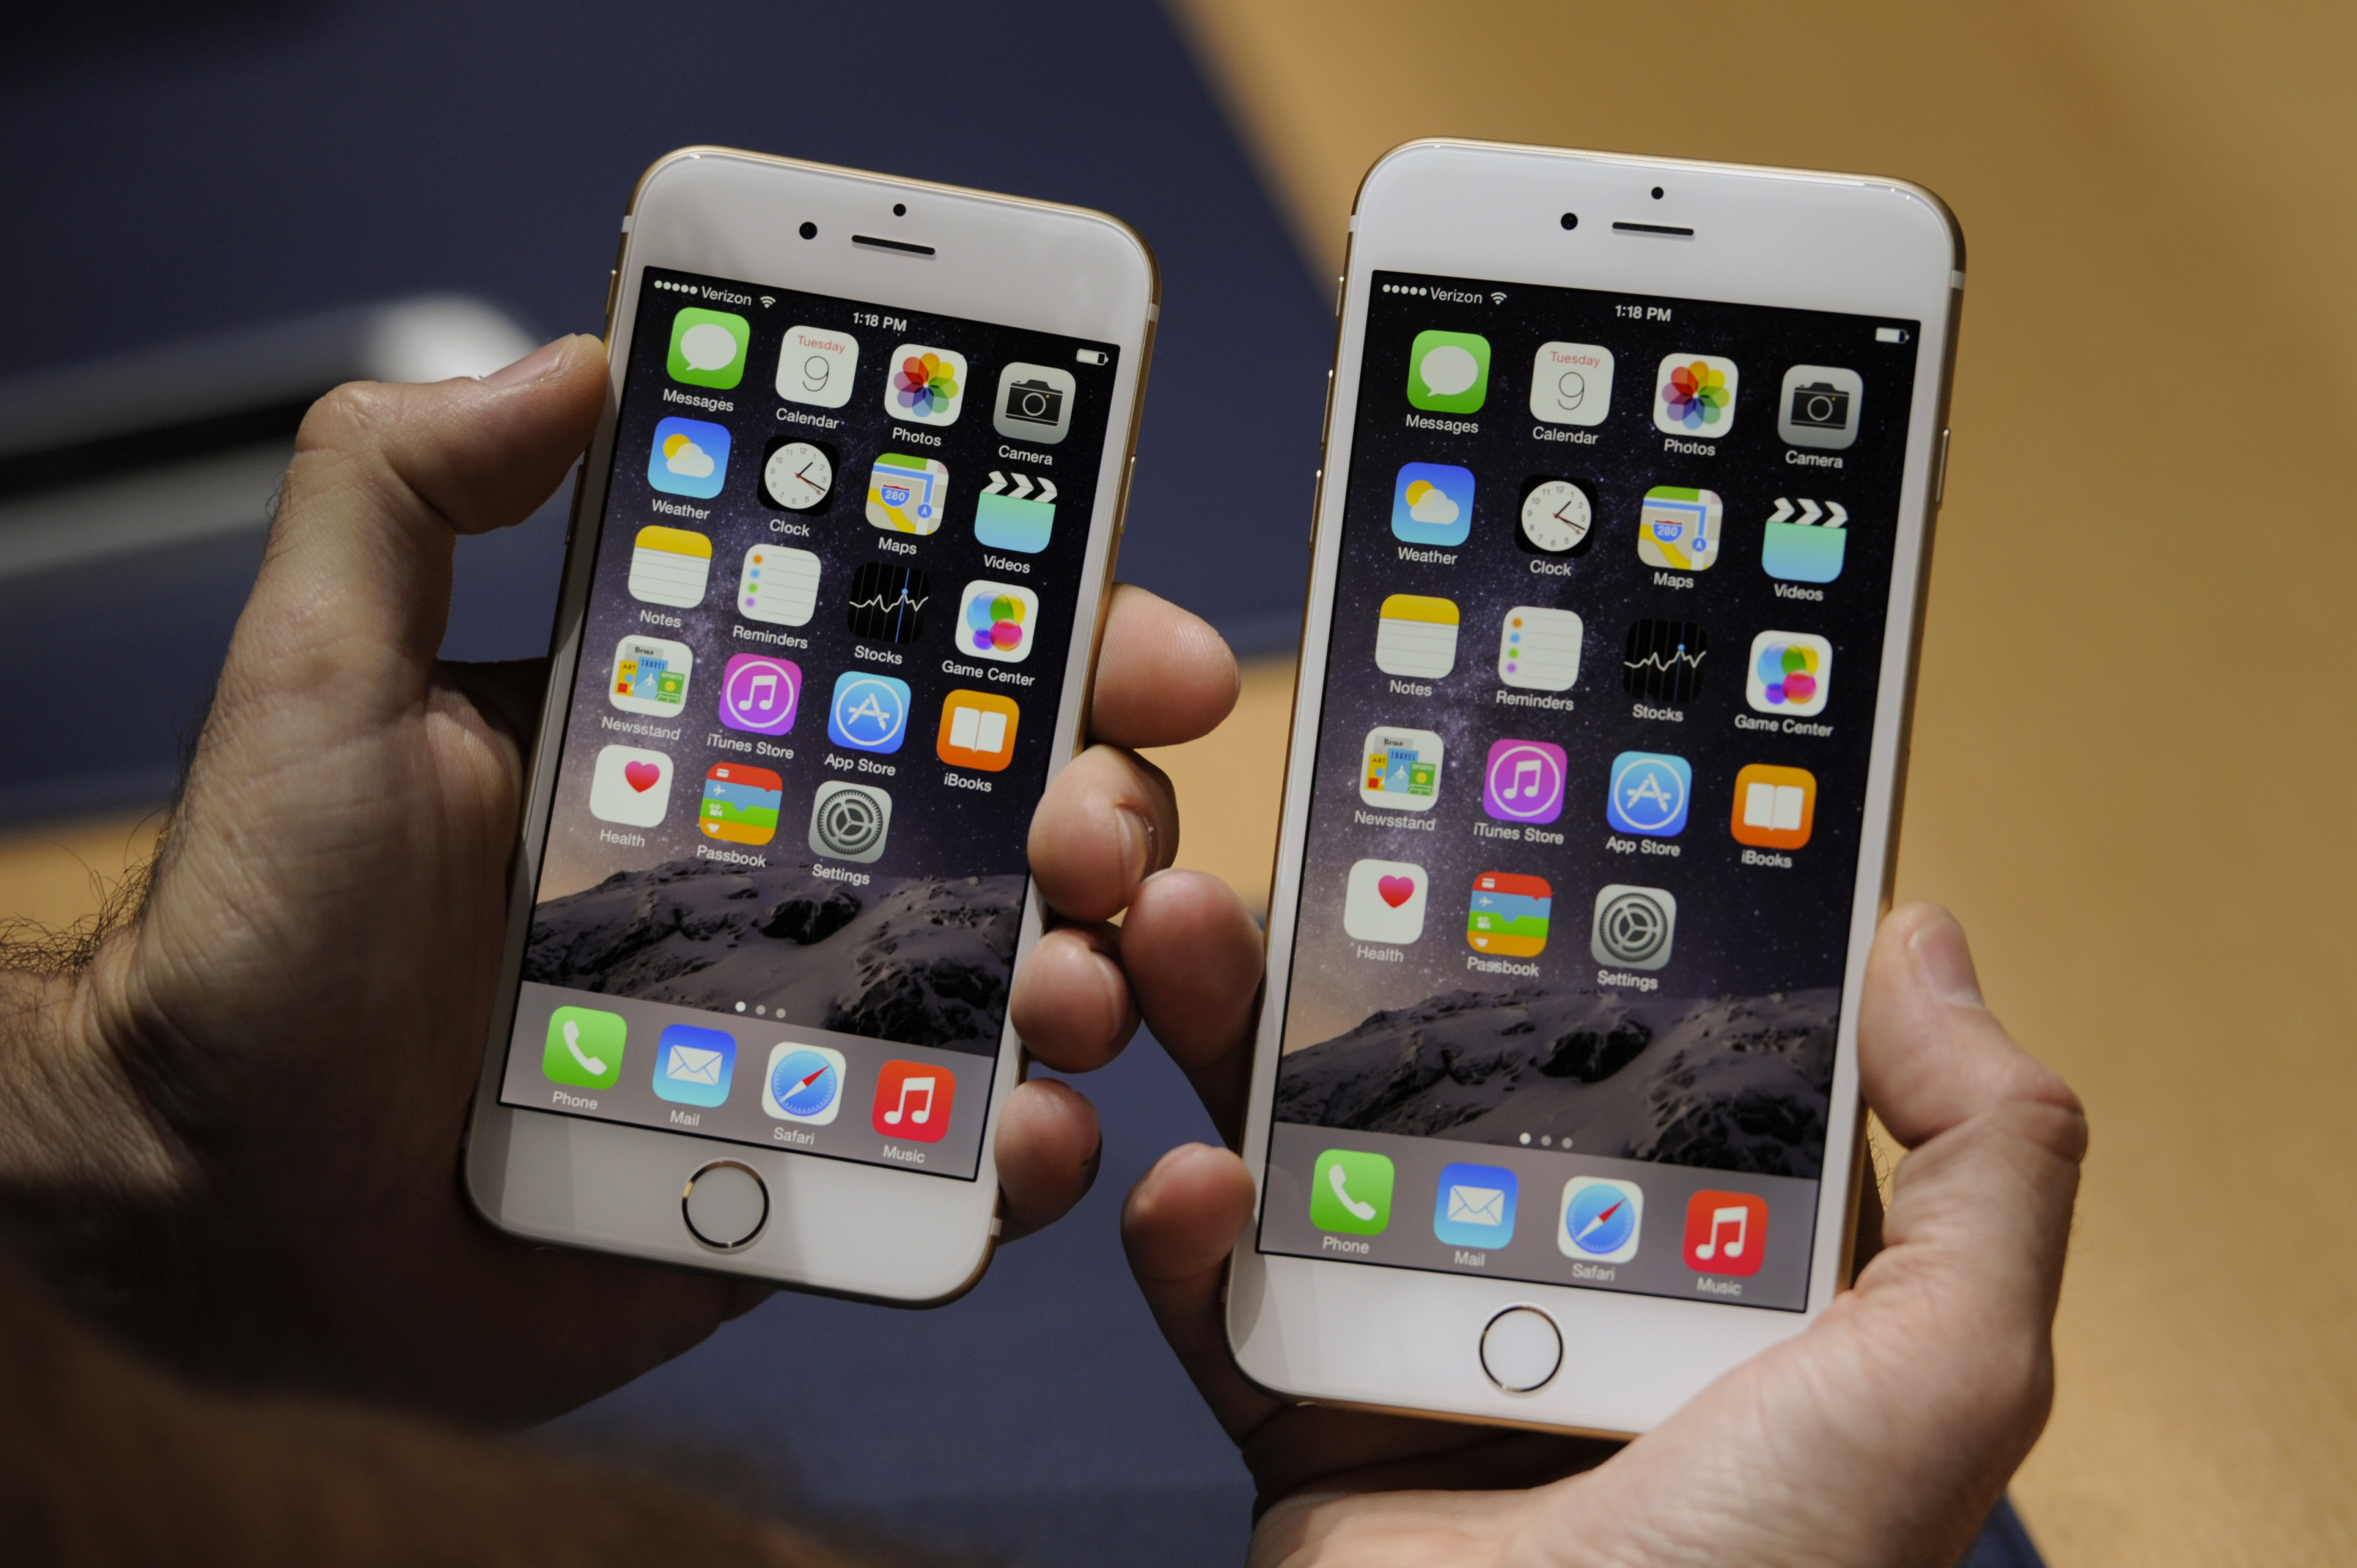 An attendee displays the new Apple Inc. iPhone 6, left, and iPhone 6 Plus for a photograph after a product announcement at Flint Center in Cupertino, California, U.S., on Tuesday, Sept. 9, 2014.